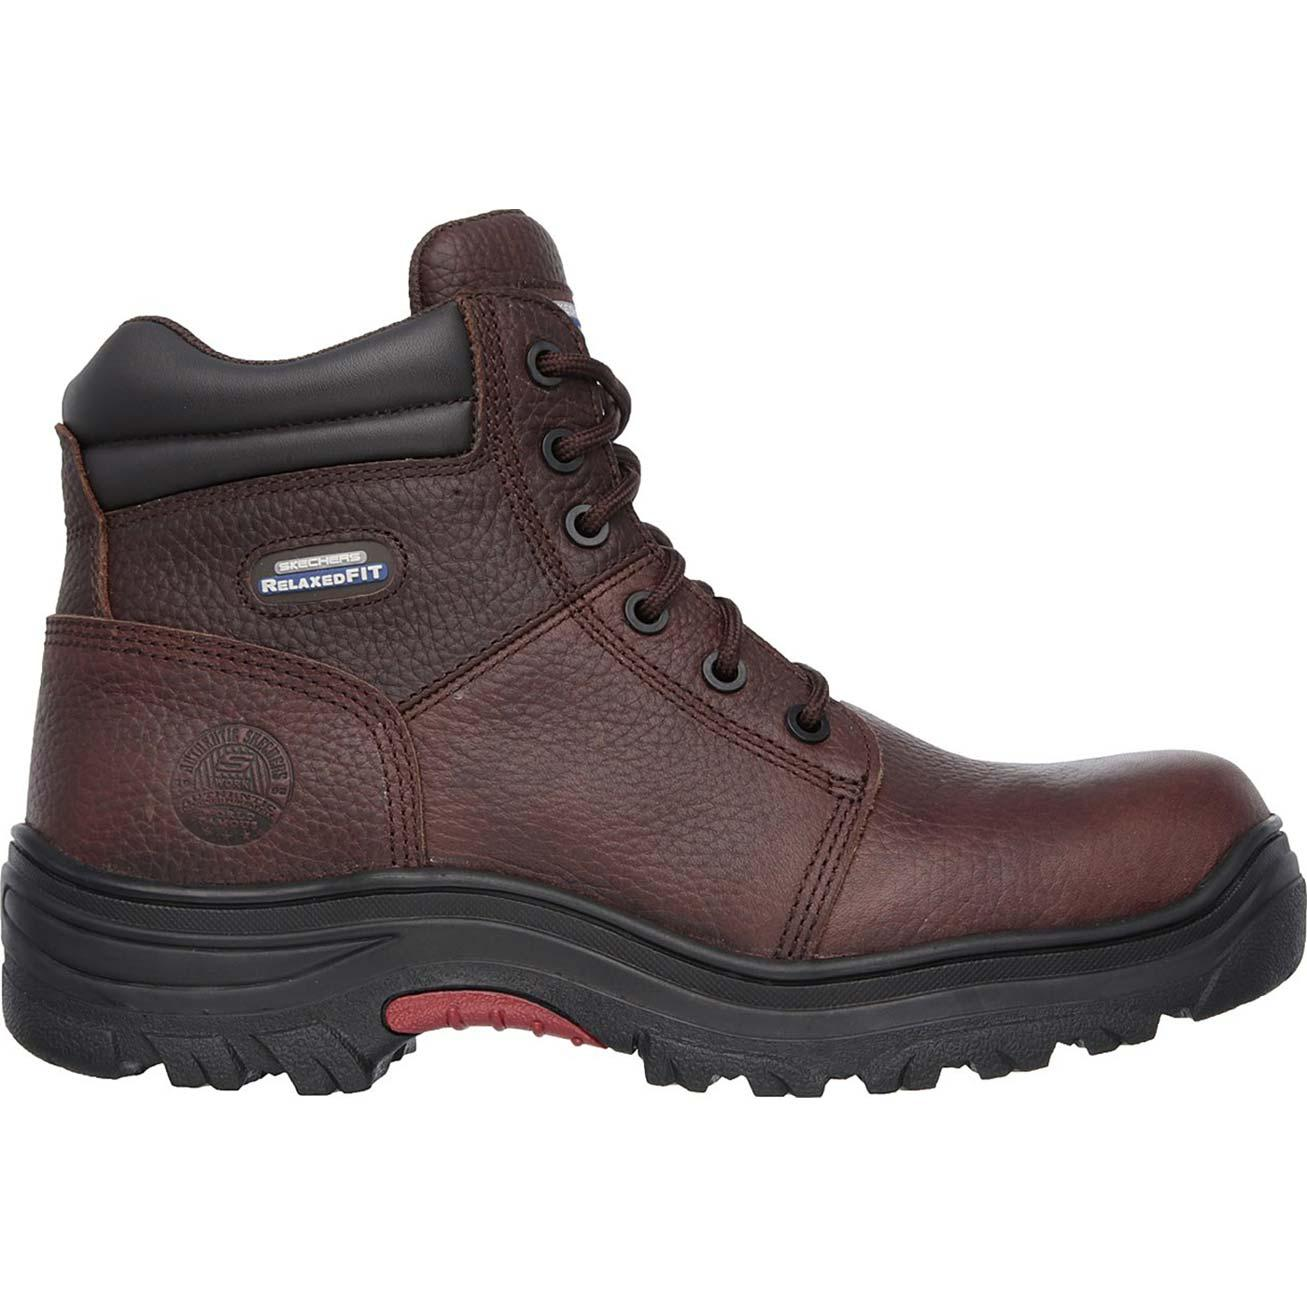 SKECHERS Work Relaxed Fit Burgin Composite Toe Puncture-Resistant ... 3474a1945d8d